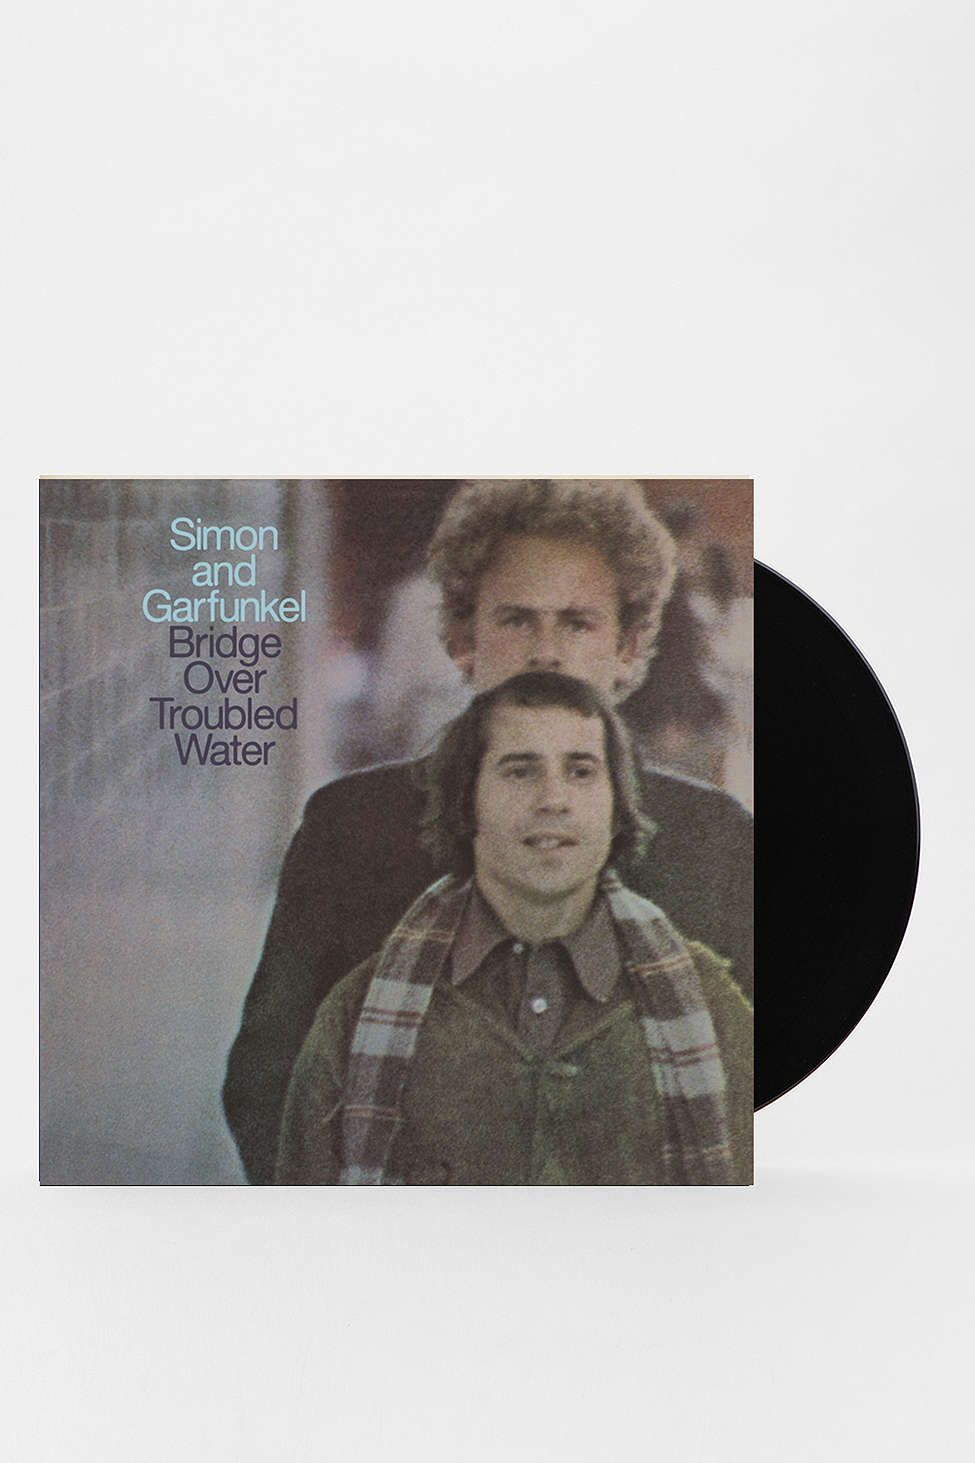 Simon & Garfunkel - Bridge Over Troubled Water LP - Urban Outfitters